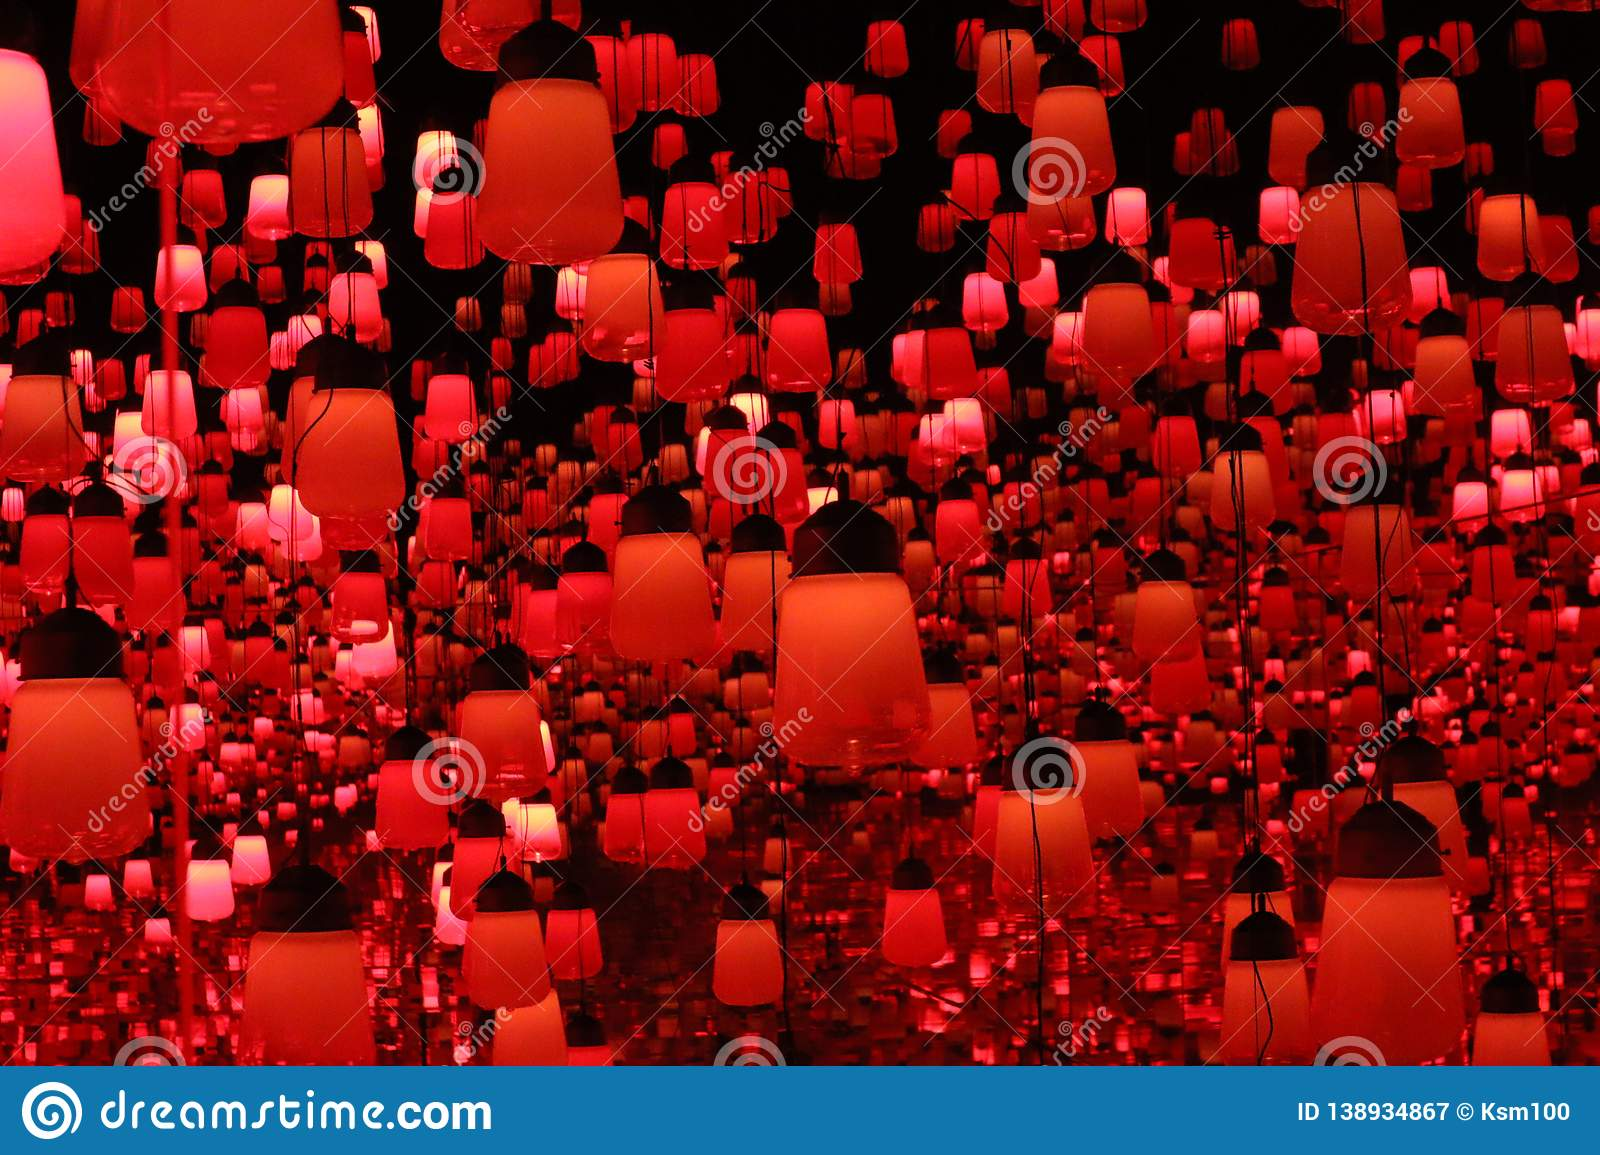 Dark orange lamp teamlab borderless